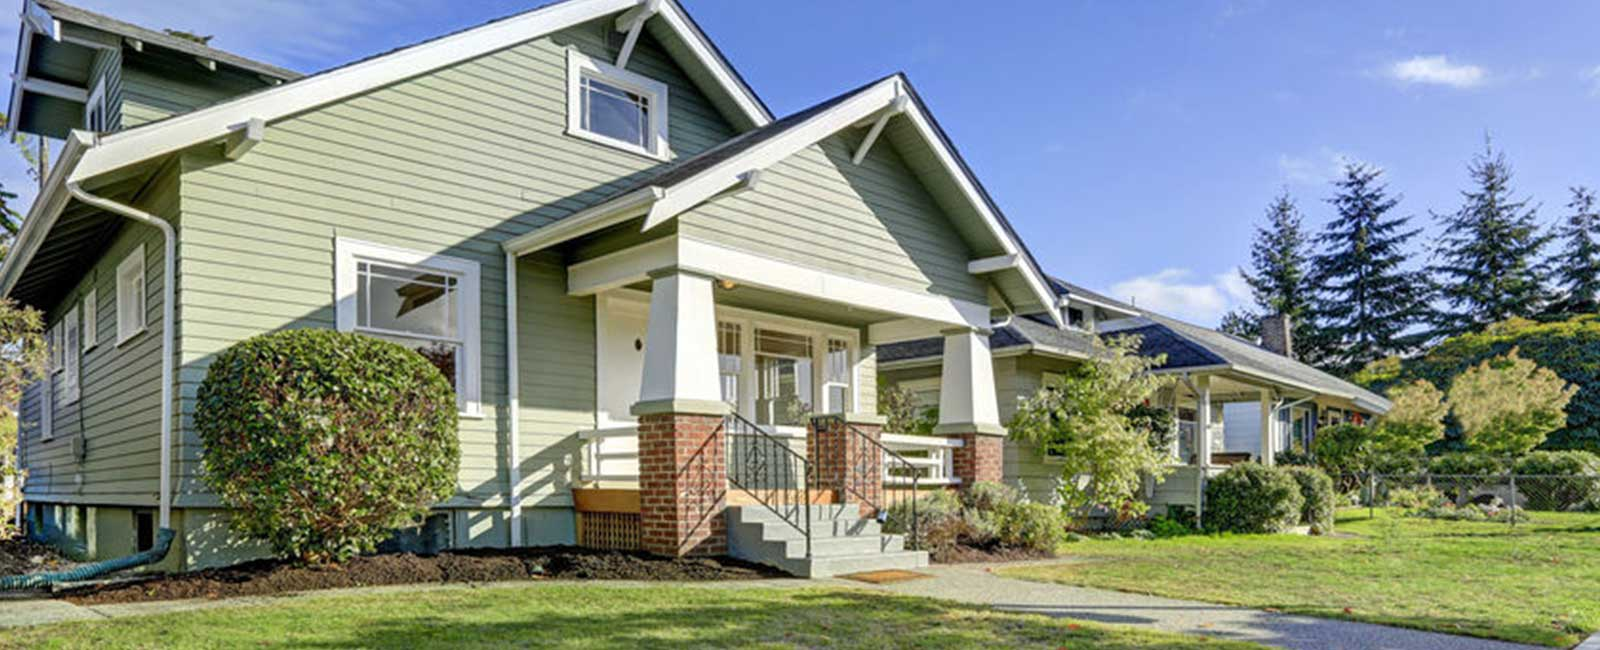 Residential Exterior Painting - Craftsman Style